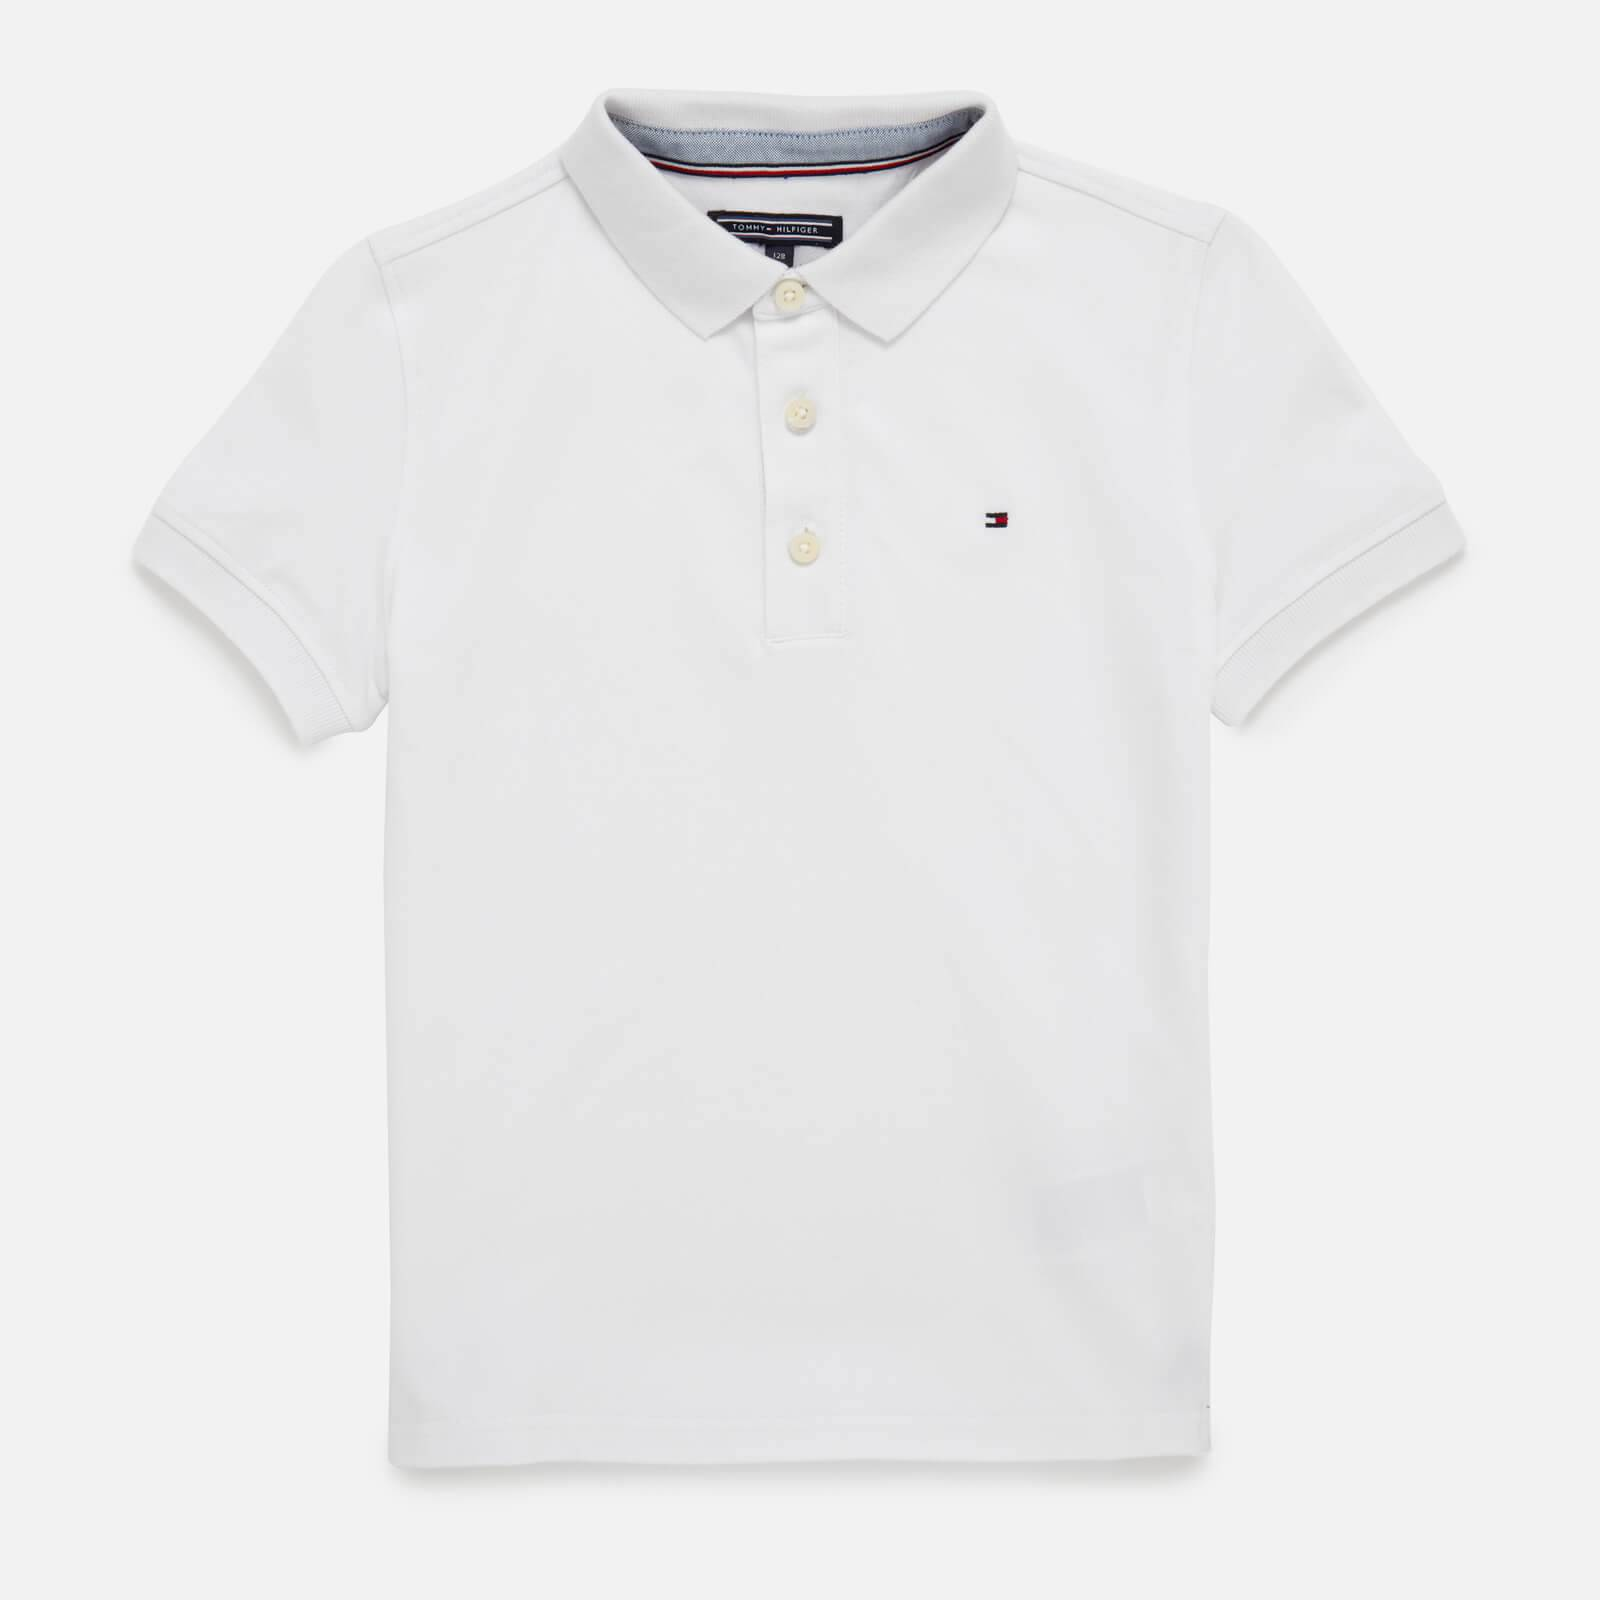 Tommy Kids Boys' Iconic Polo Shirt - Bright White - 6 Years